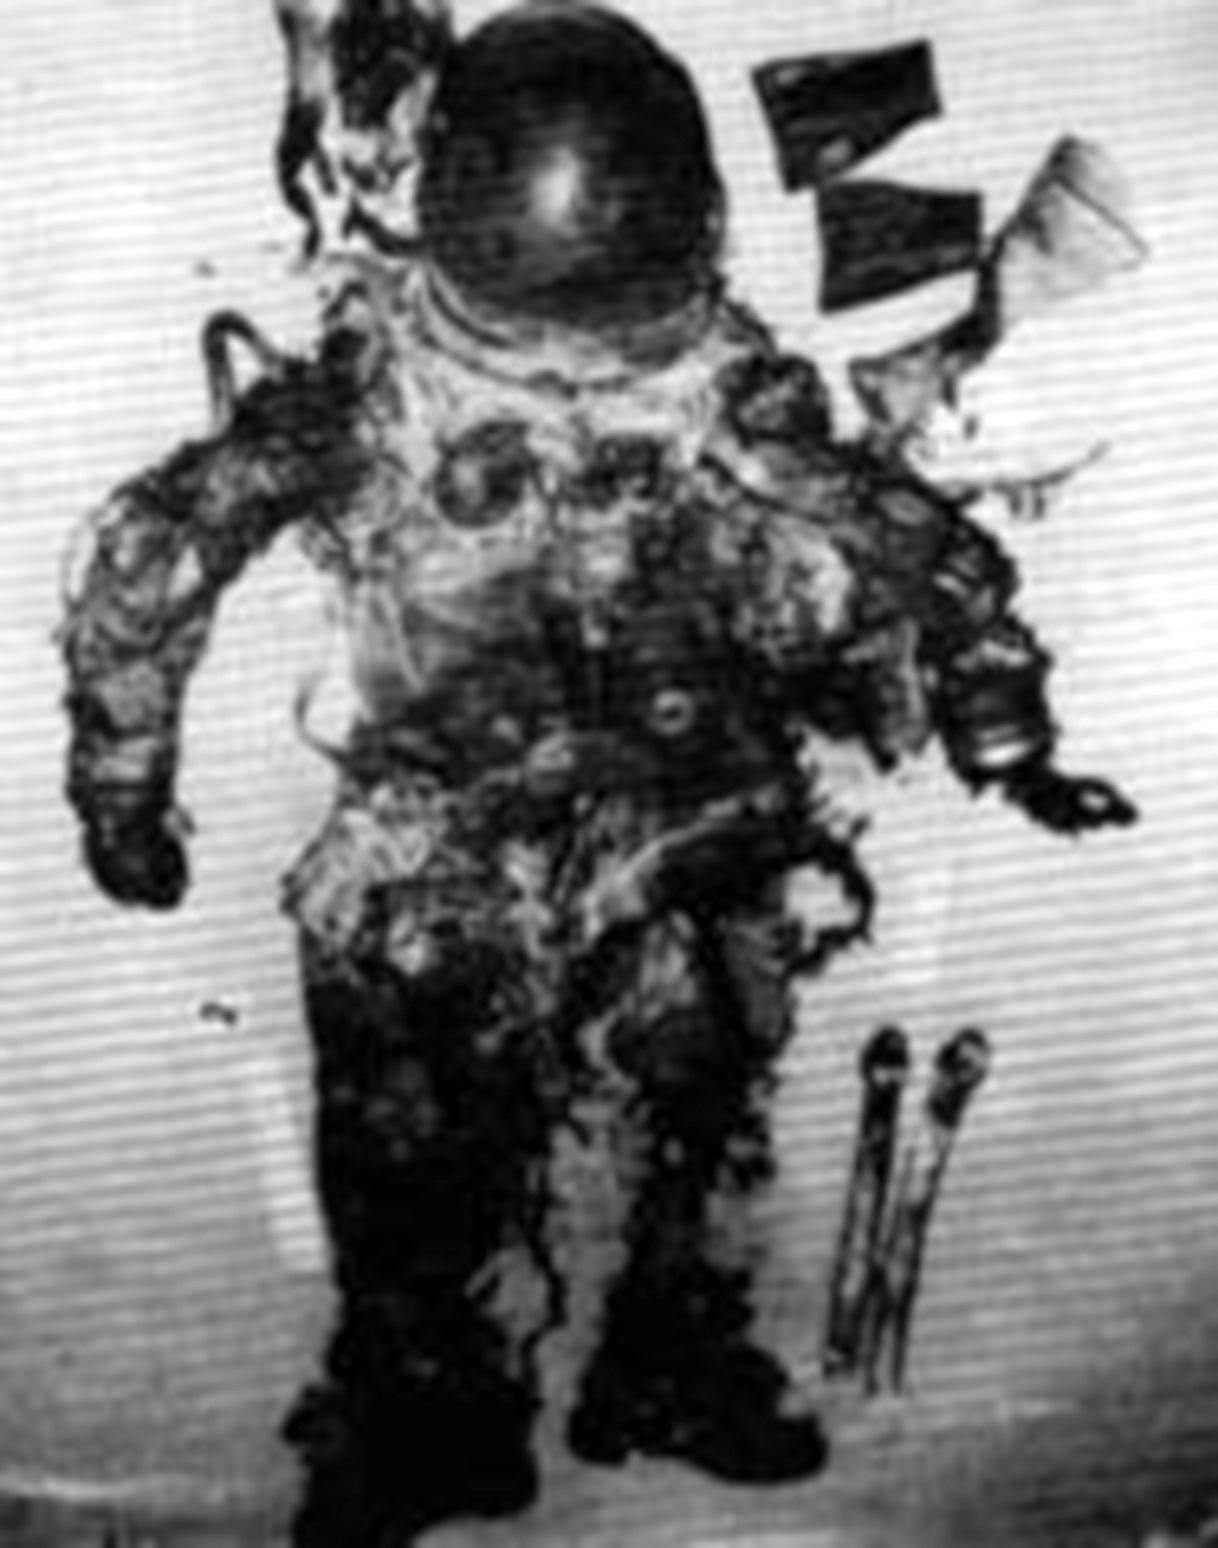 space shuttle challenger autopsy photos - photo #2